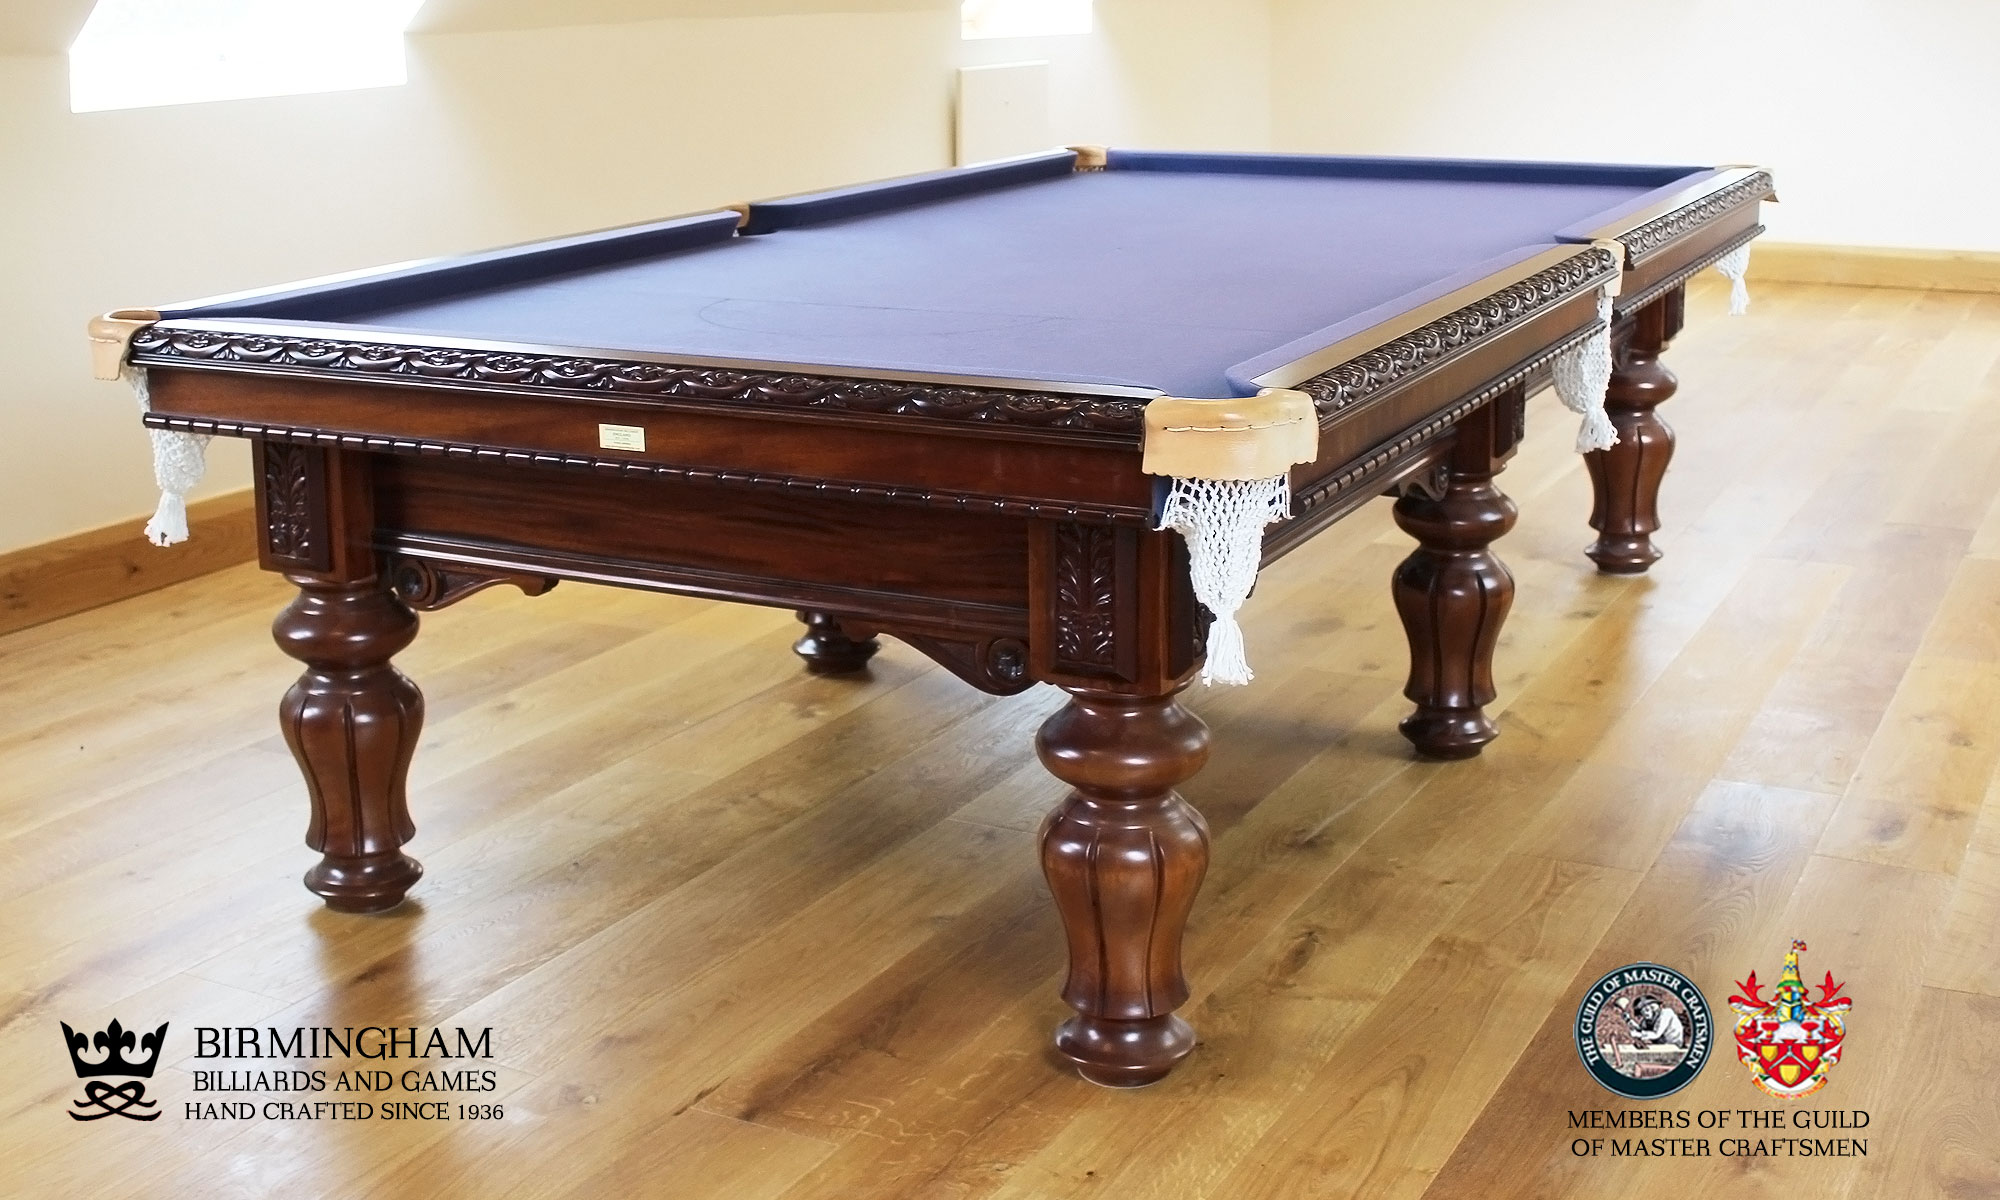 The Blenheim-hand carved pool table, slate blue baize